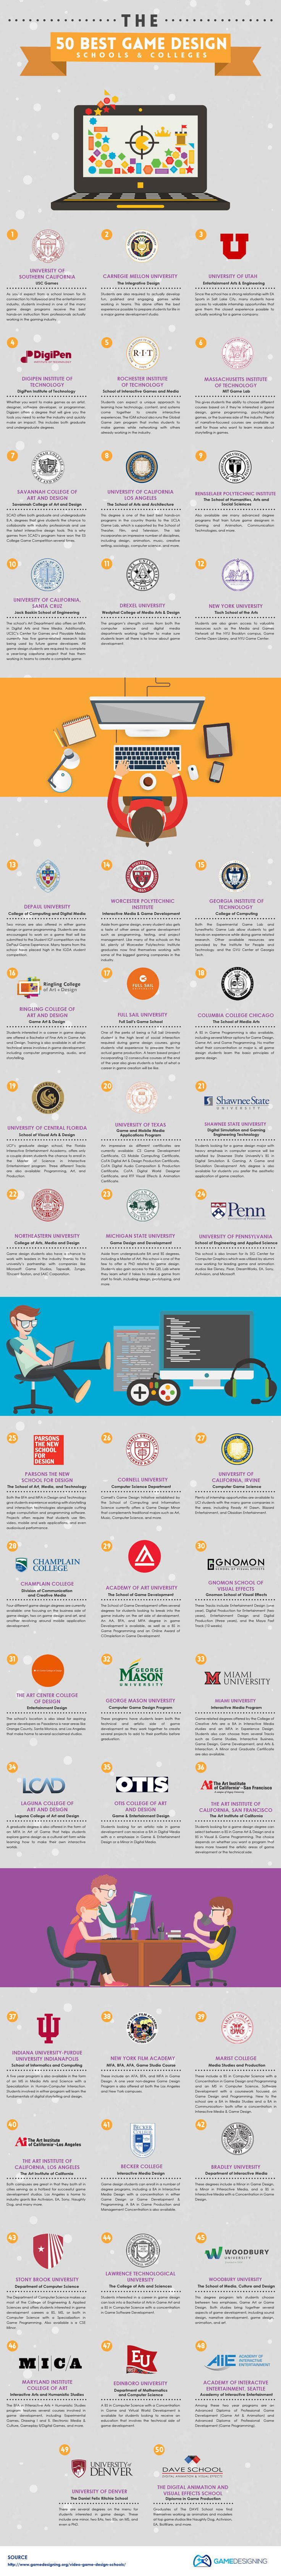 The infographic ranks the top colleges and schools for video game design programs that will improve student's success in the gaming designing industry.